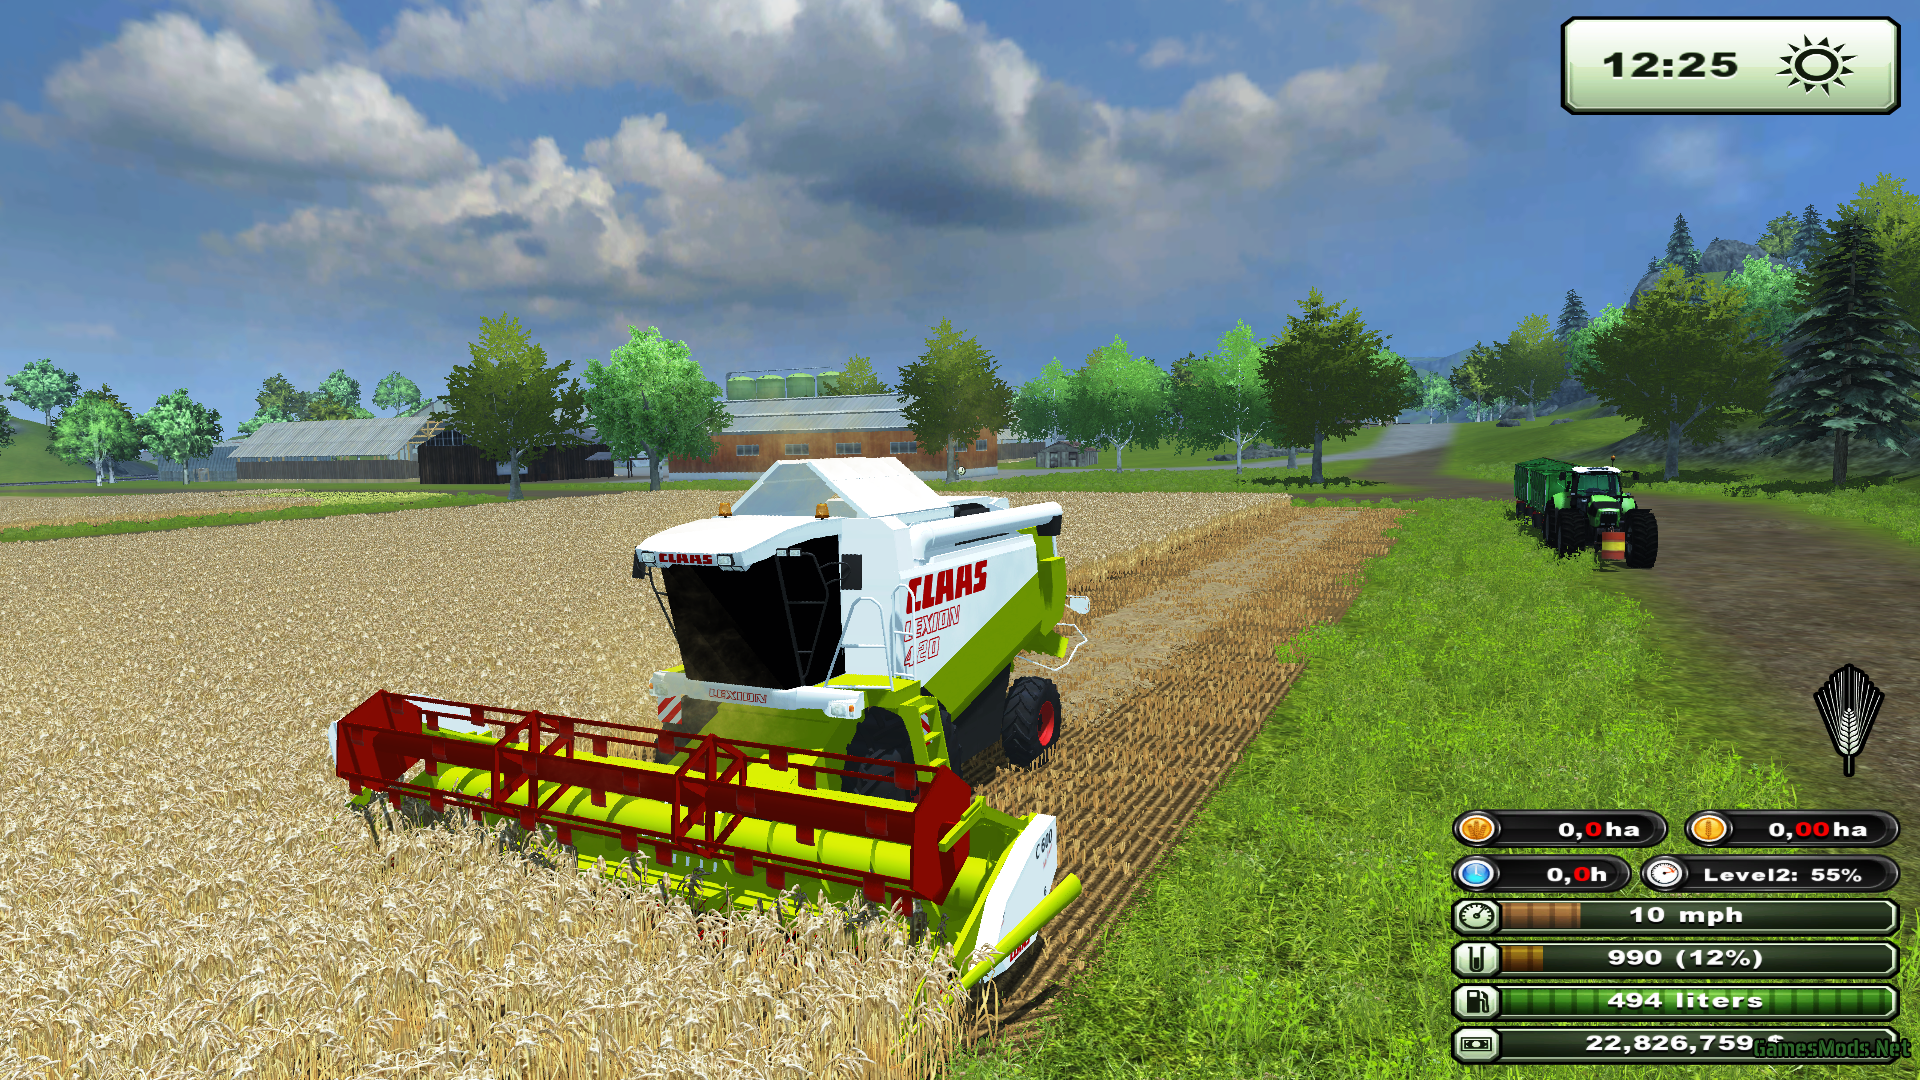 Claas Lexion420 c600 cutting